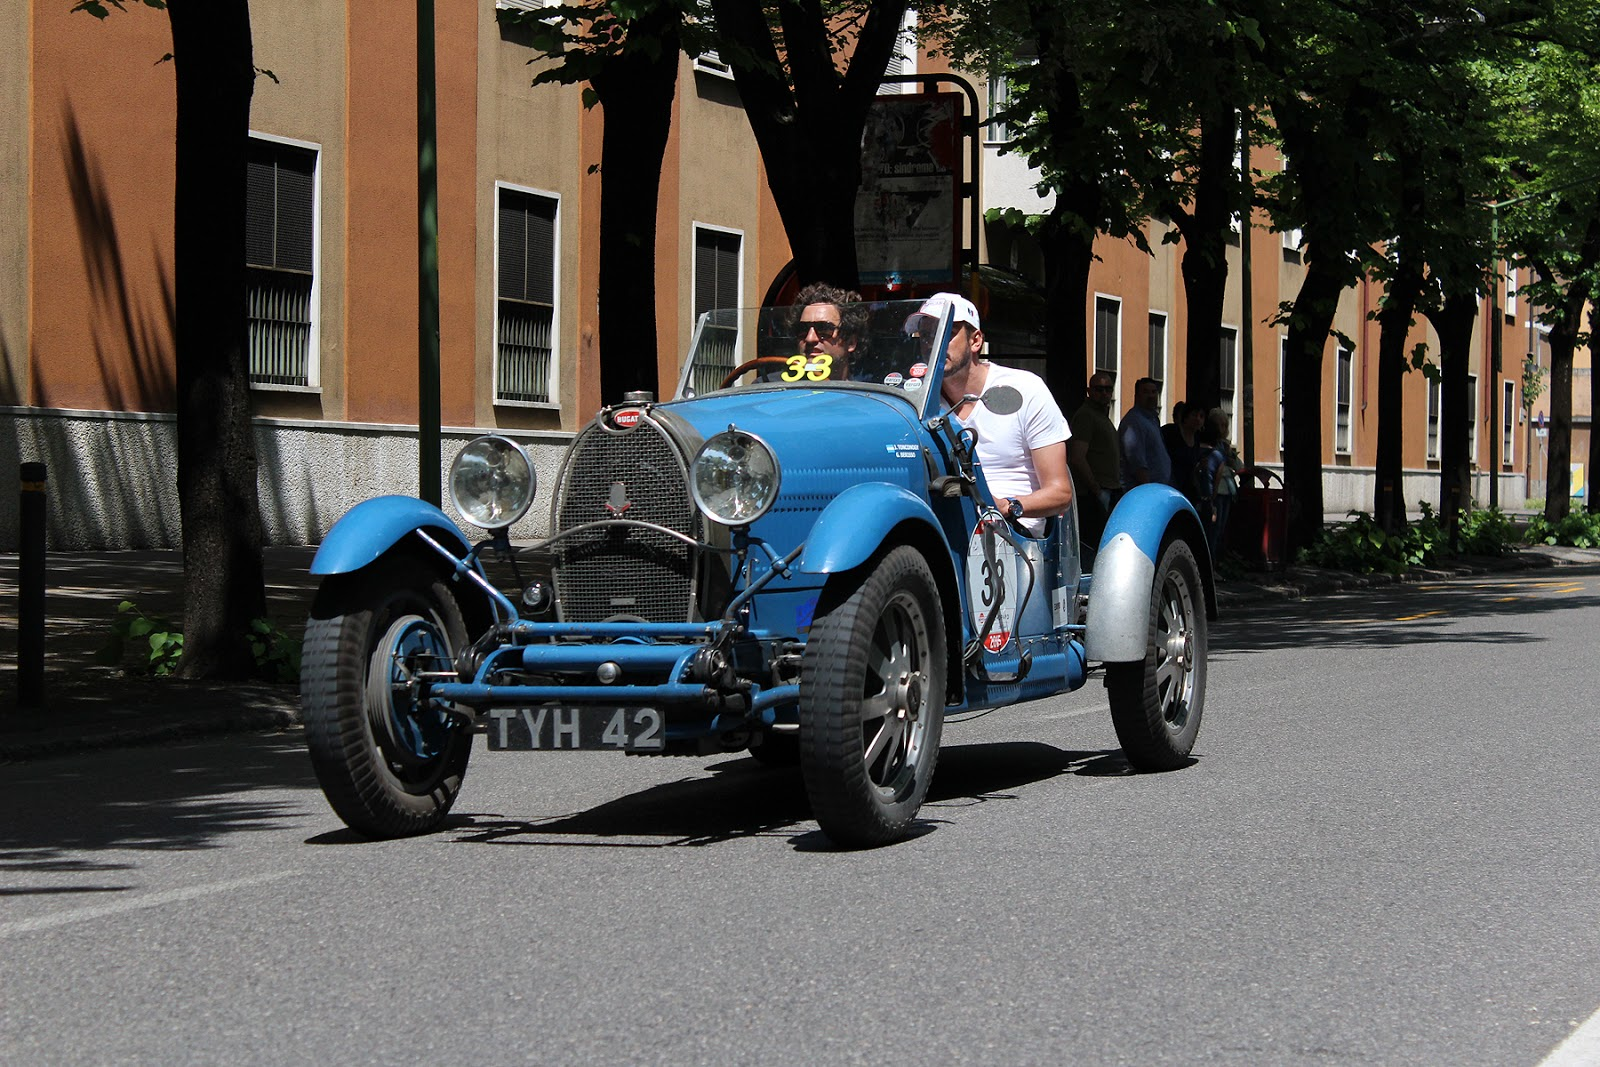 Eniwhere Fashion - Mille Miglia 2015